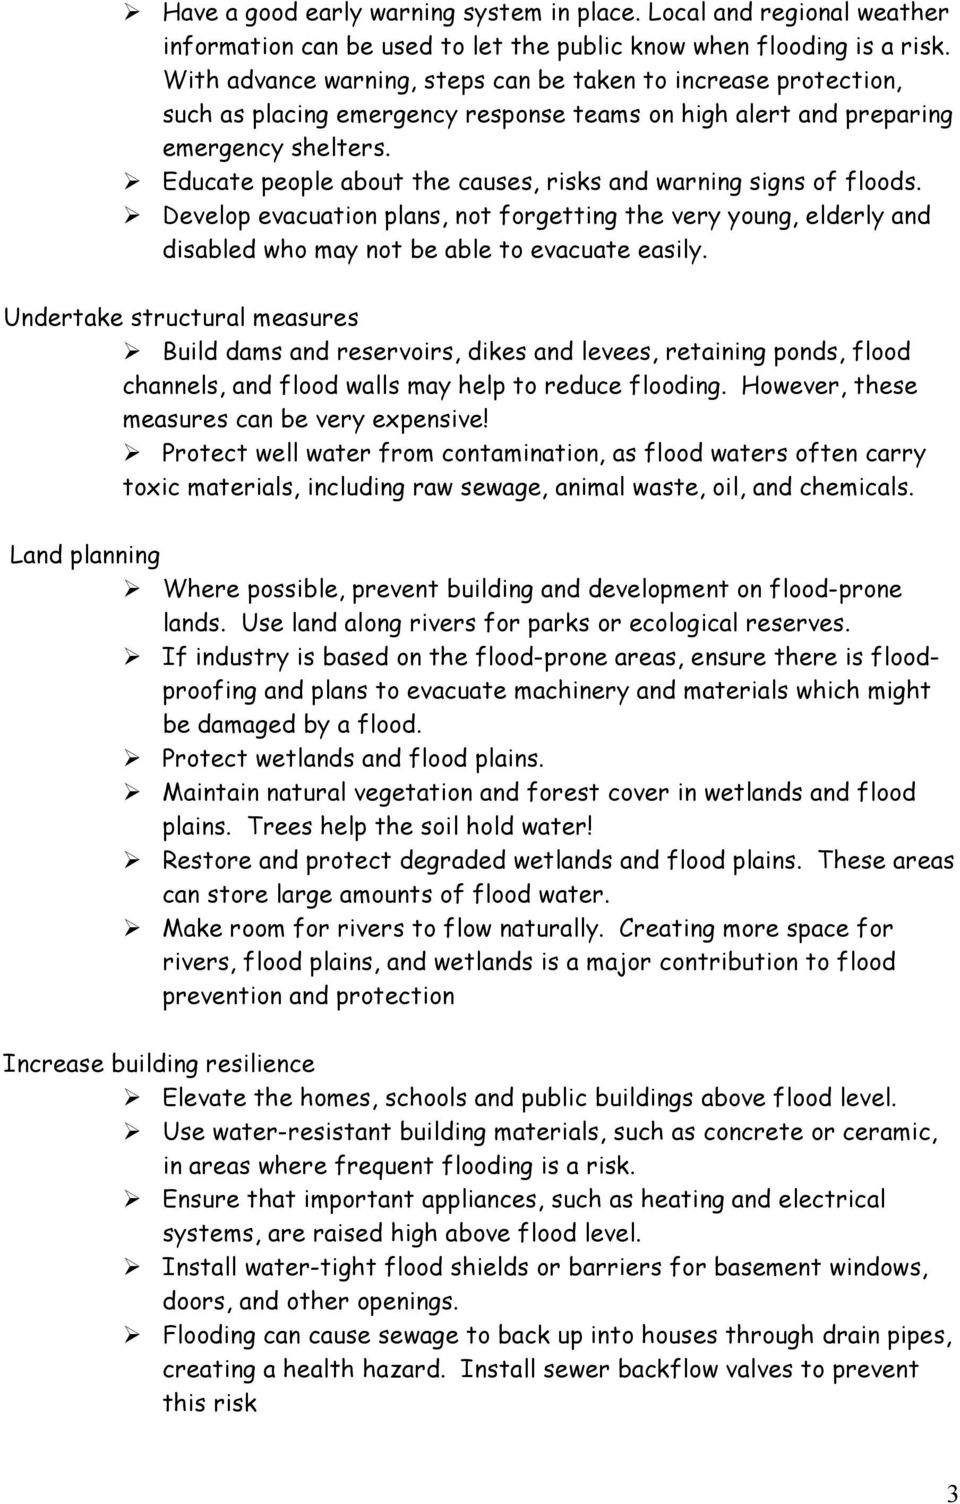 Educate people about the causes, risks and warning signs of floods. Develop evacuation plans, not forgetting the very young, elderly and disabled who may not be able to evacuate easily.